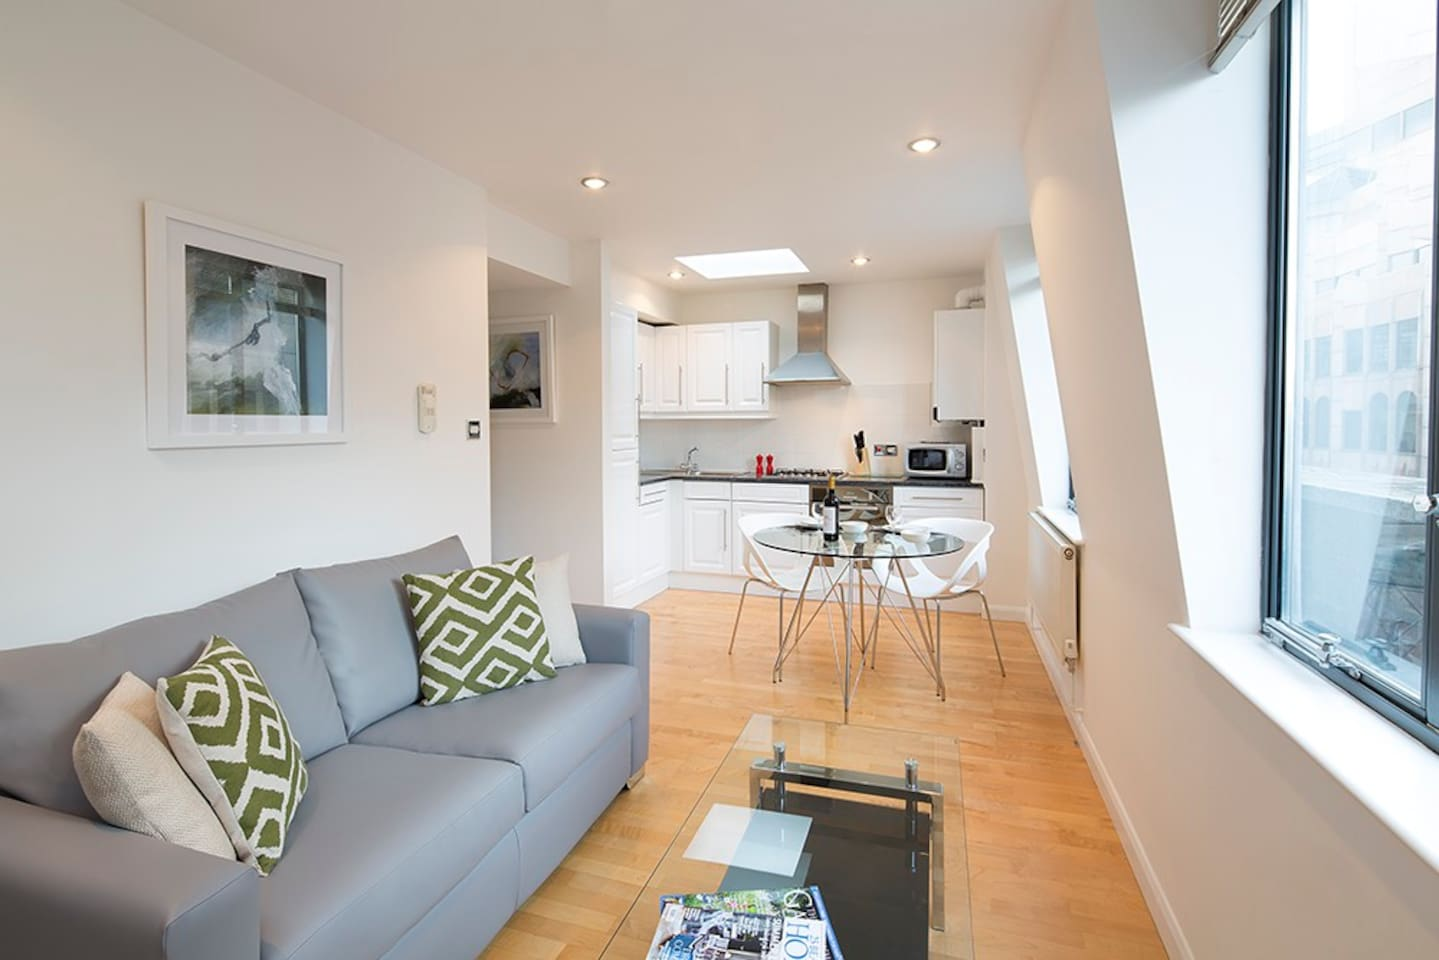 Loft Style apartment in Monument - Lofts for Rent in London, Greater London,  United Kingdom